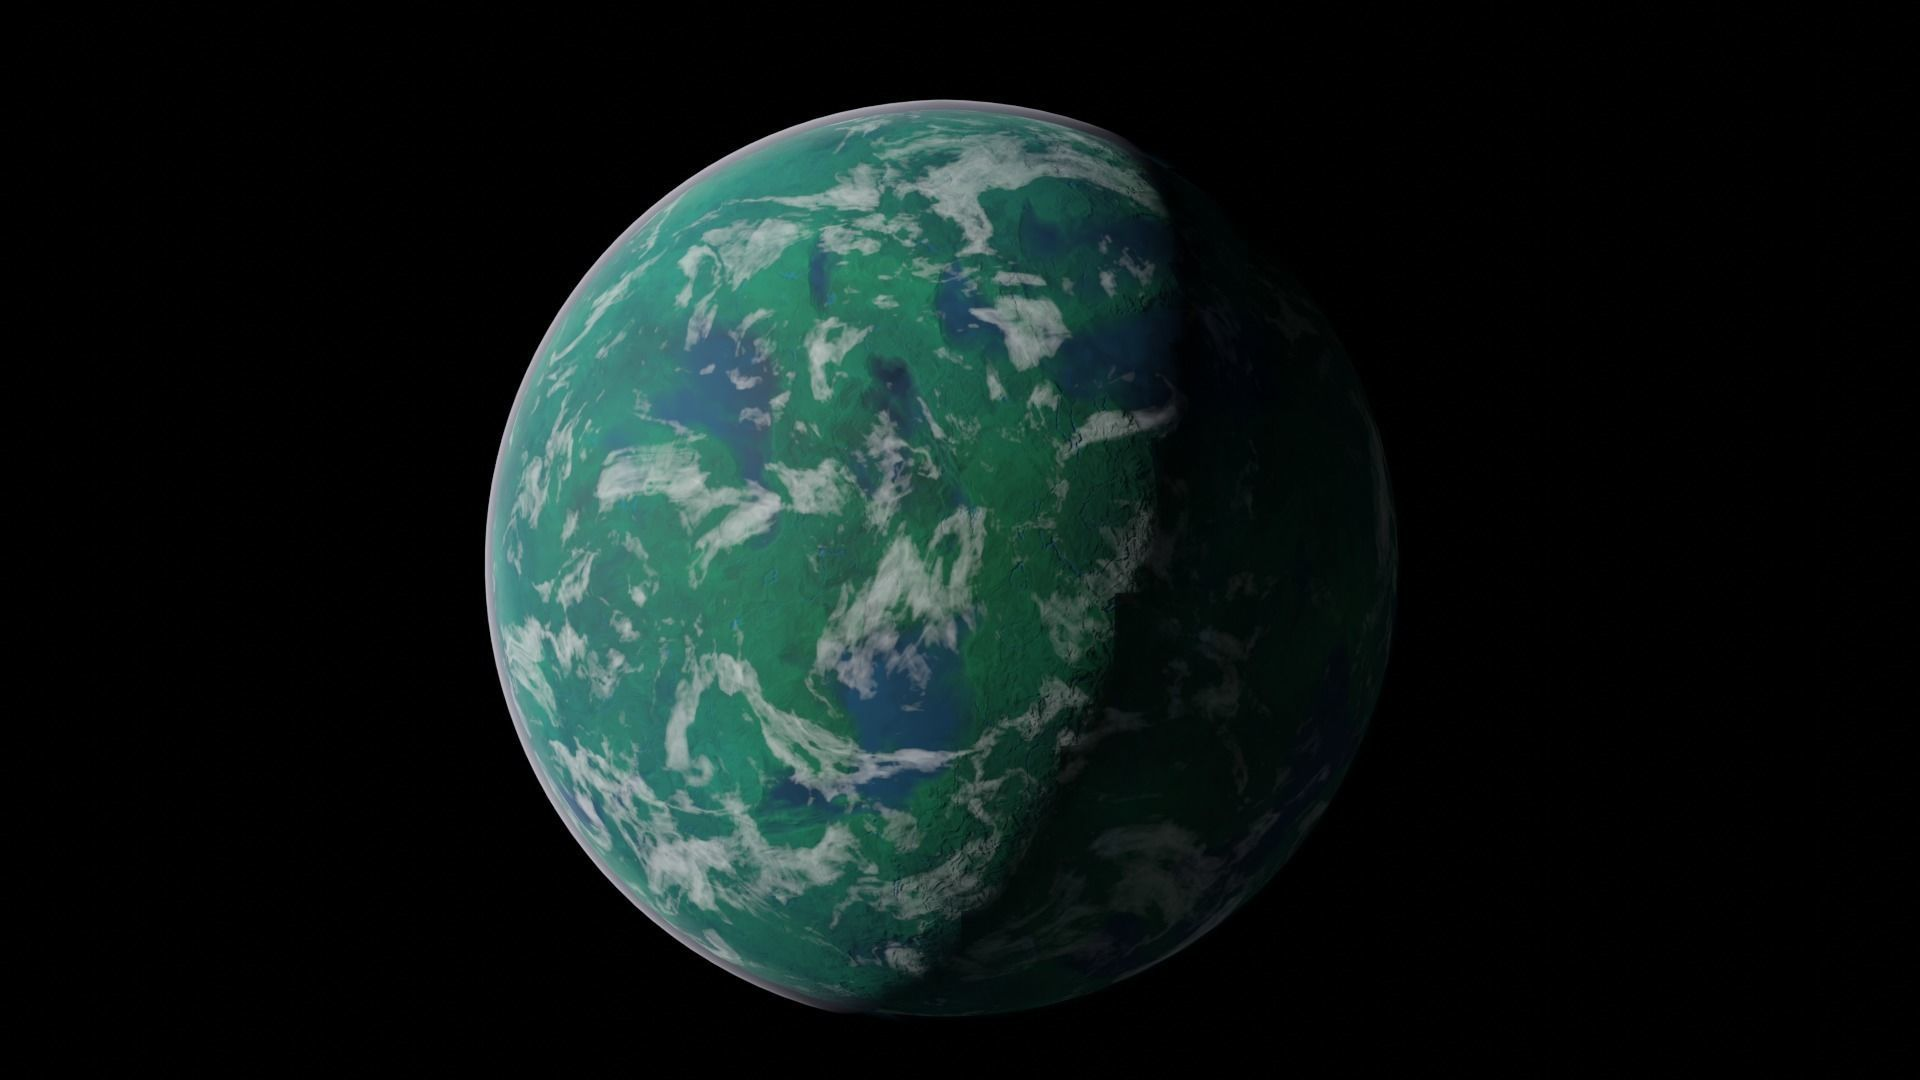 Tropical Planet - Up to 8K Textures